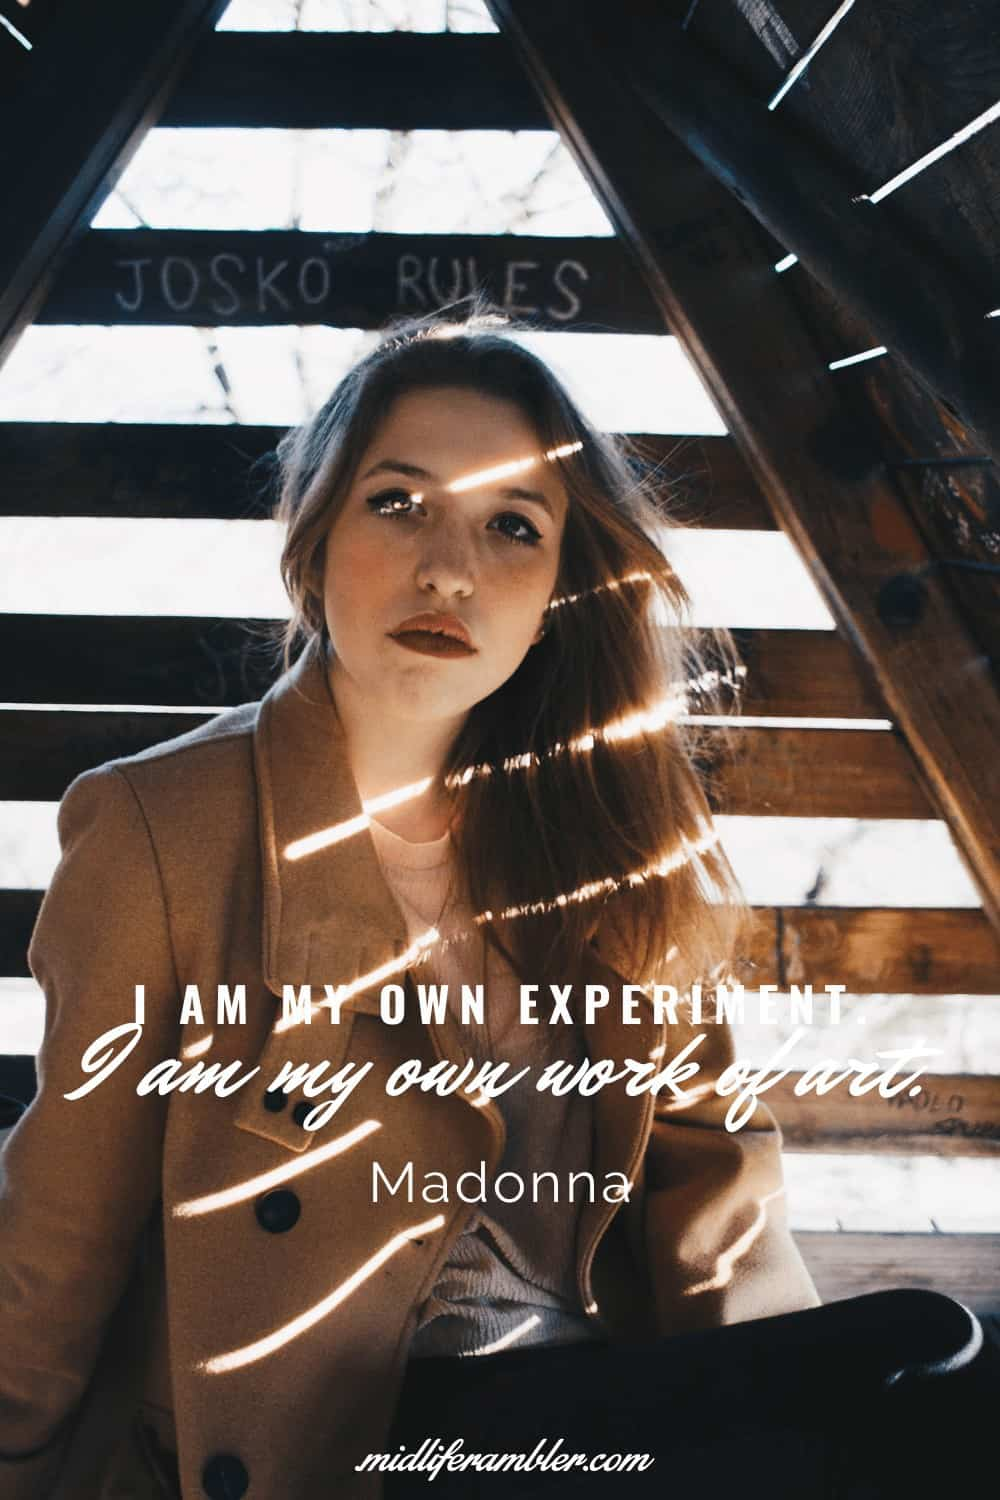 50 Self-Compassion Quotes and Affirmations to Help You Learn to Love and Accept Yourself - I am my own experiment. I am my own work of art. - Madonna